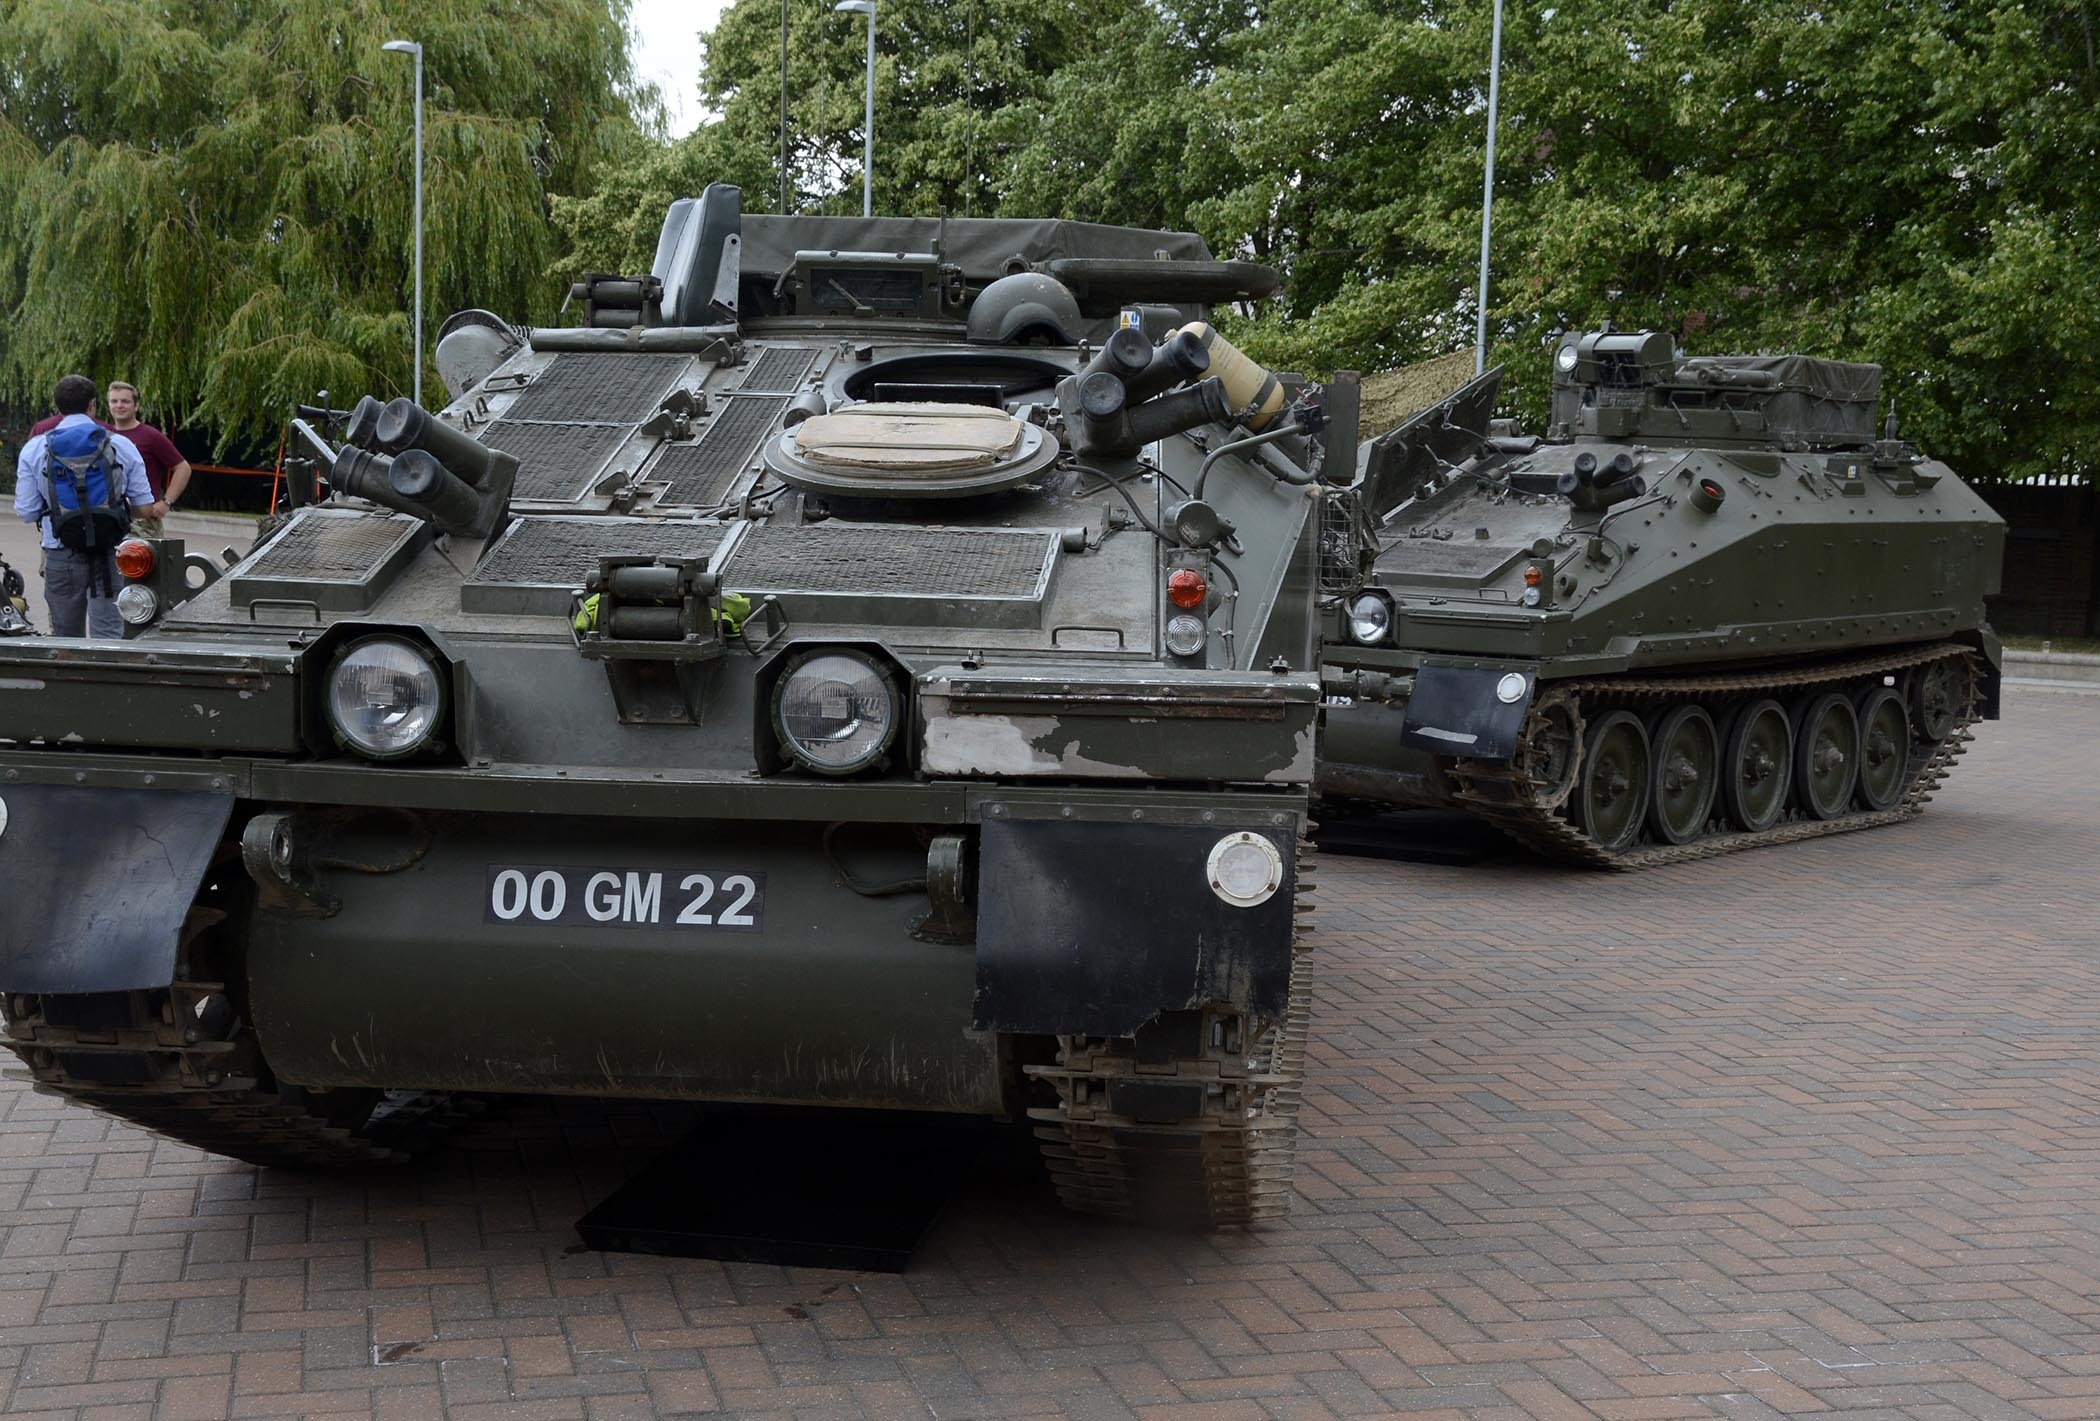 Tanks on display at a family open day at Combermere